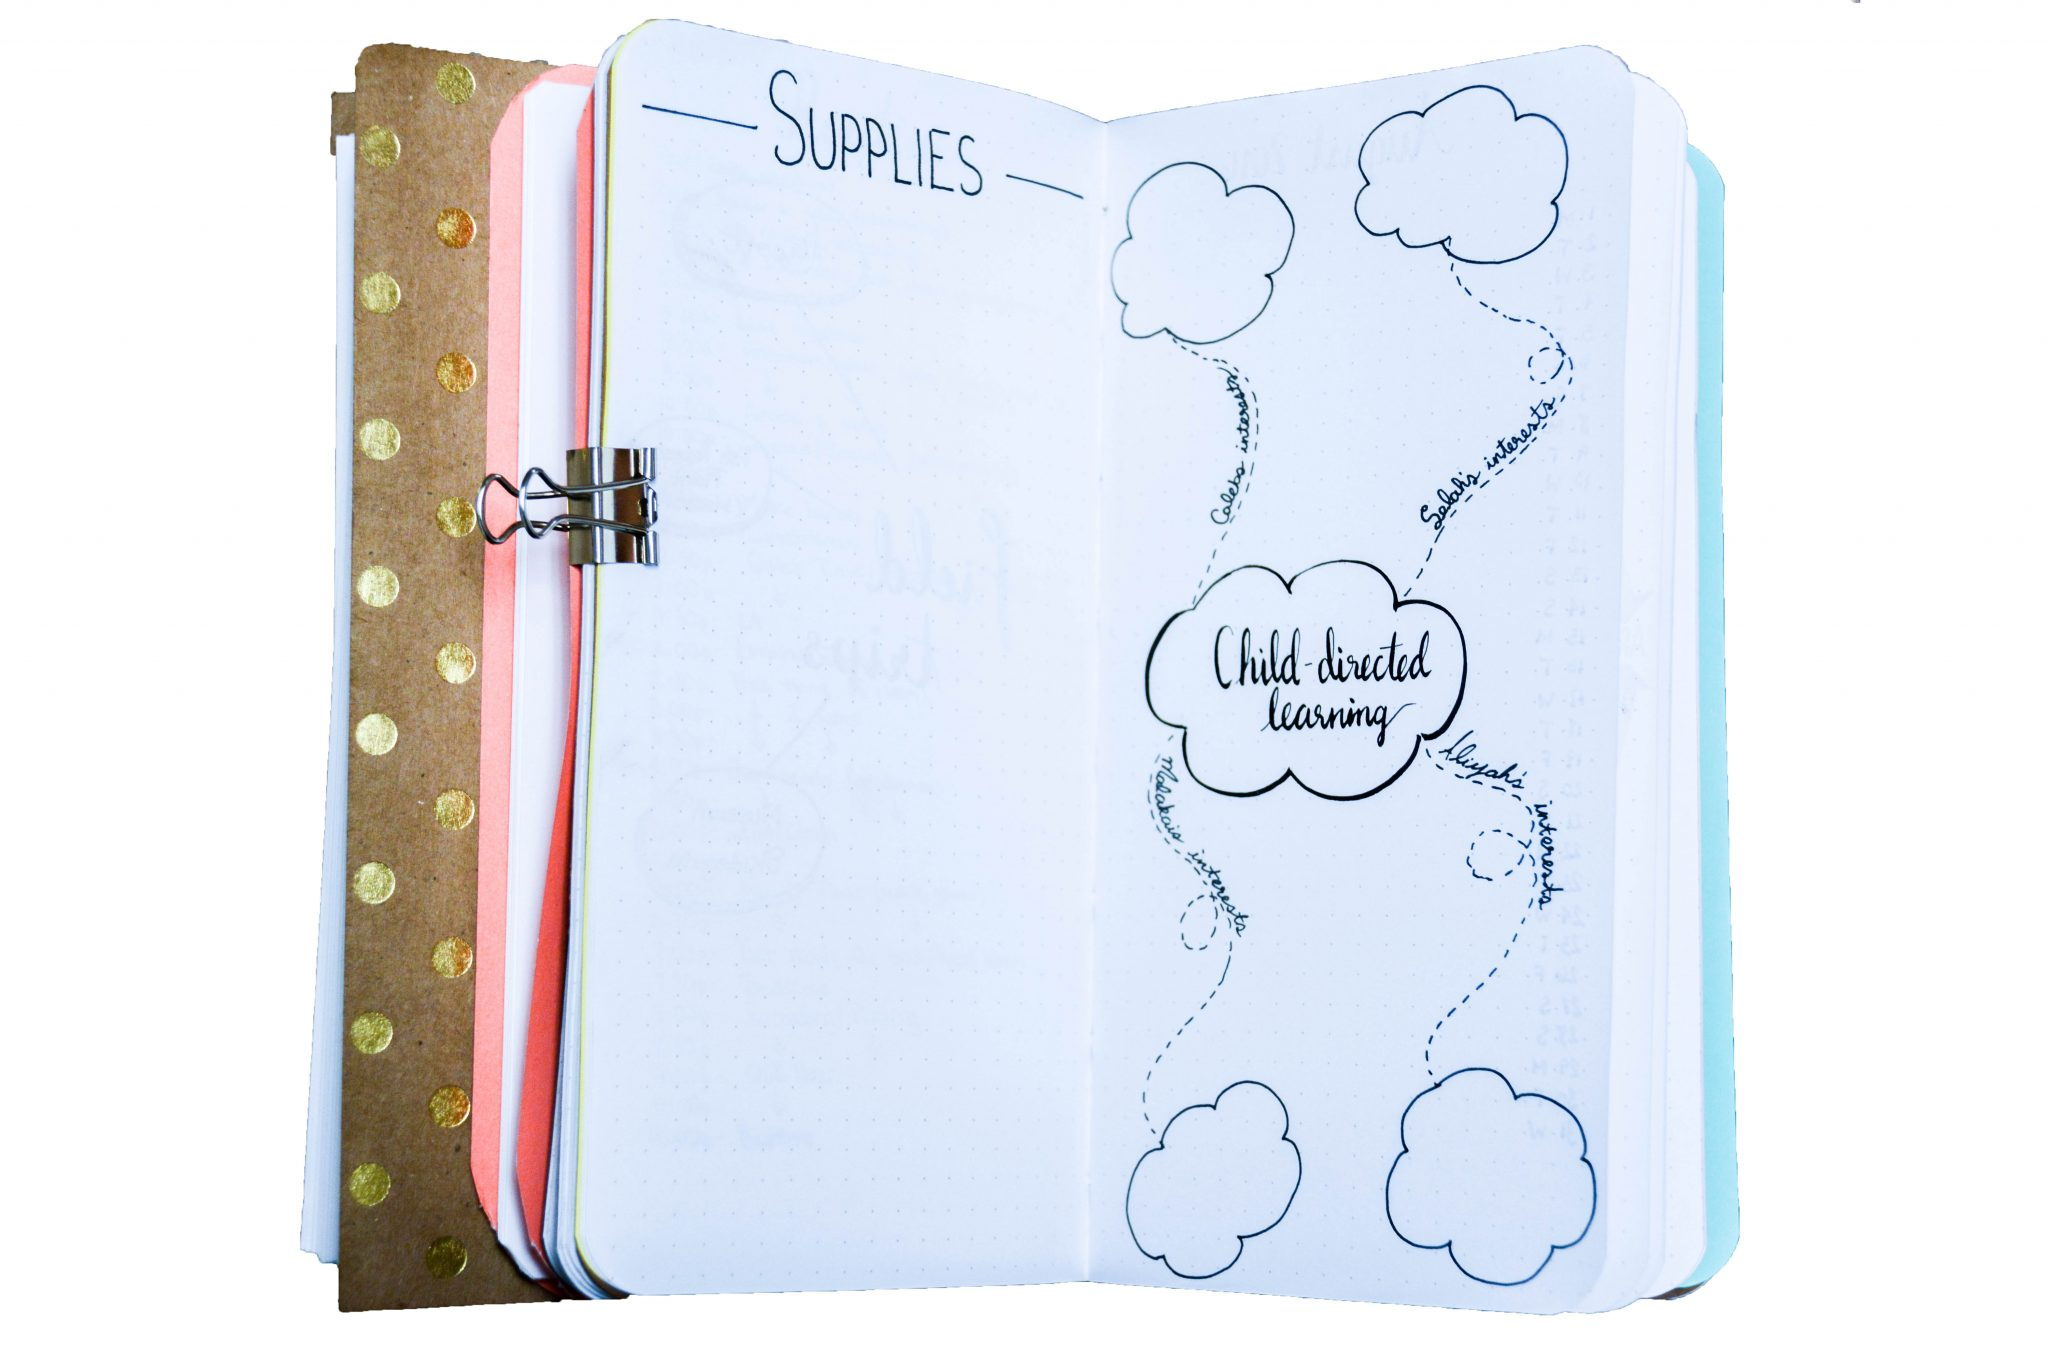 homeschool planning: supplies and child-directed learning